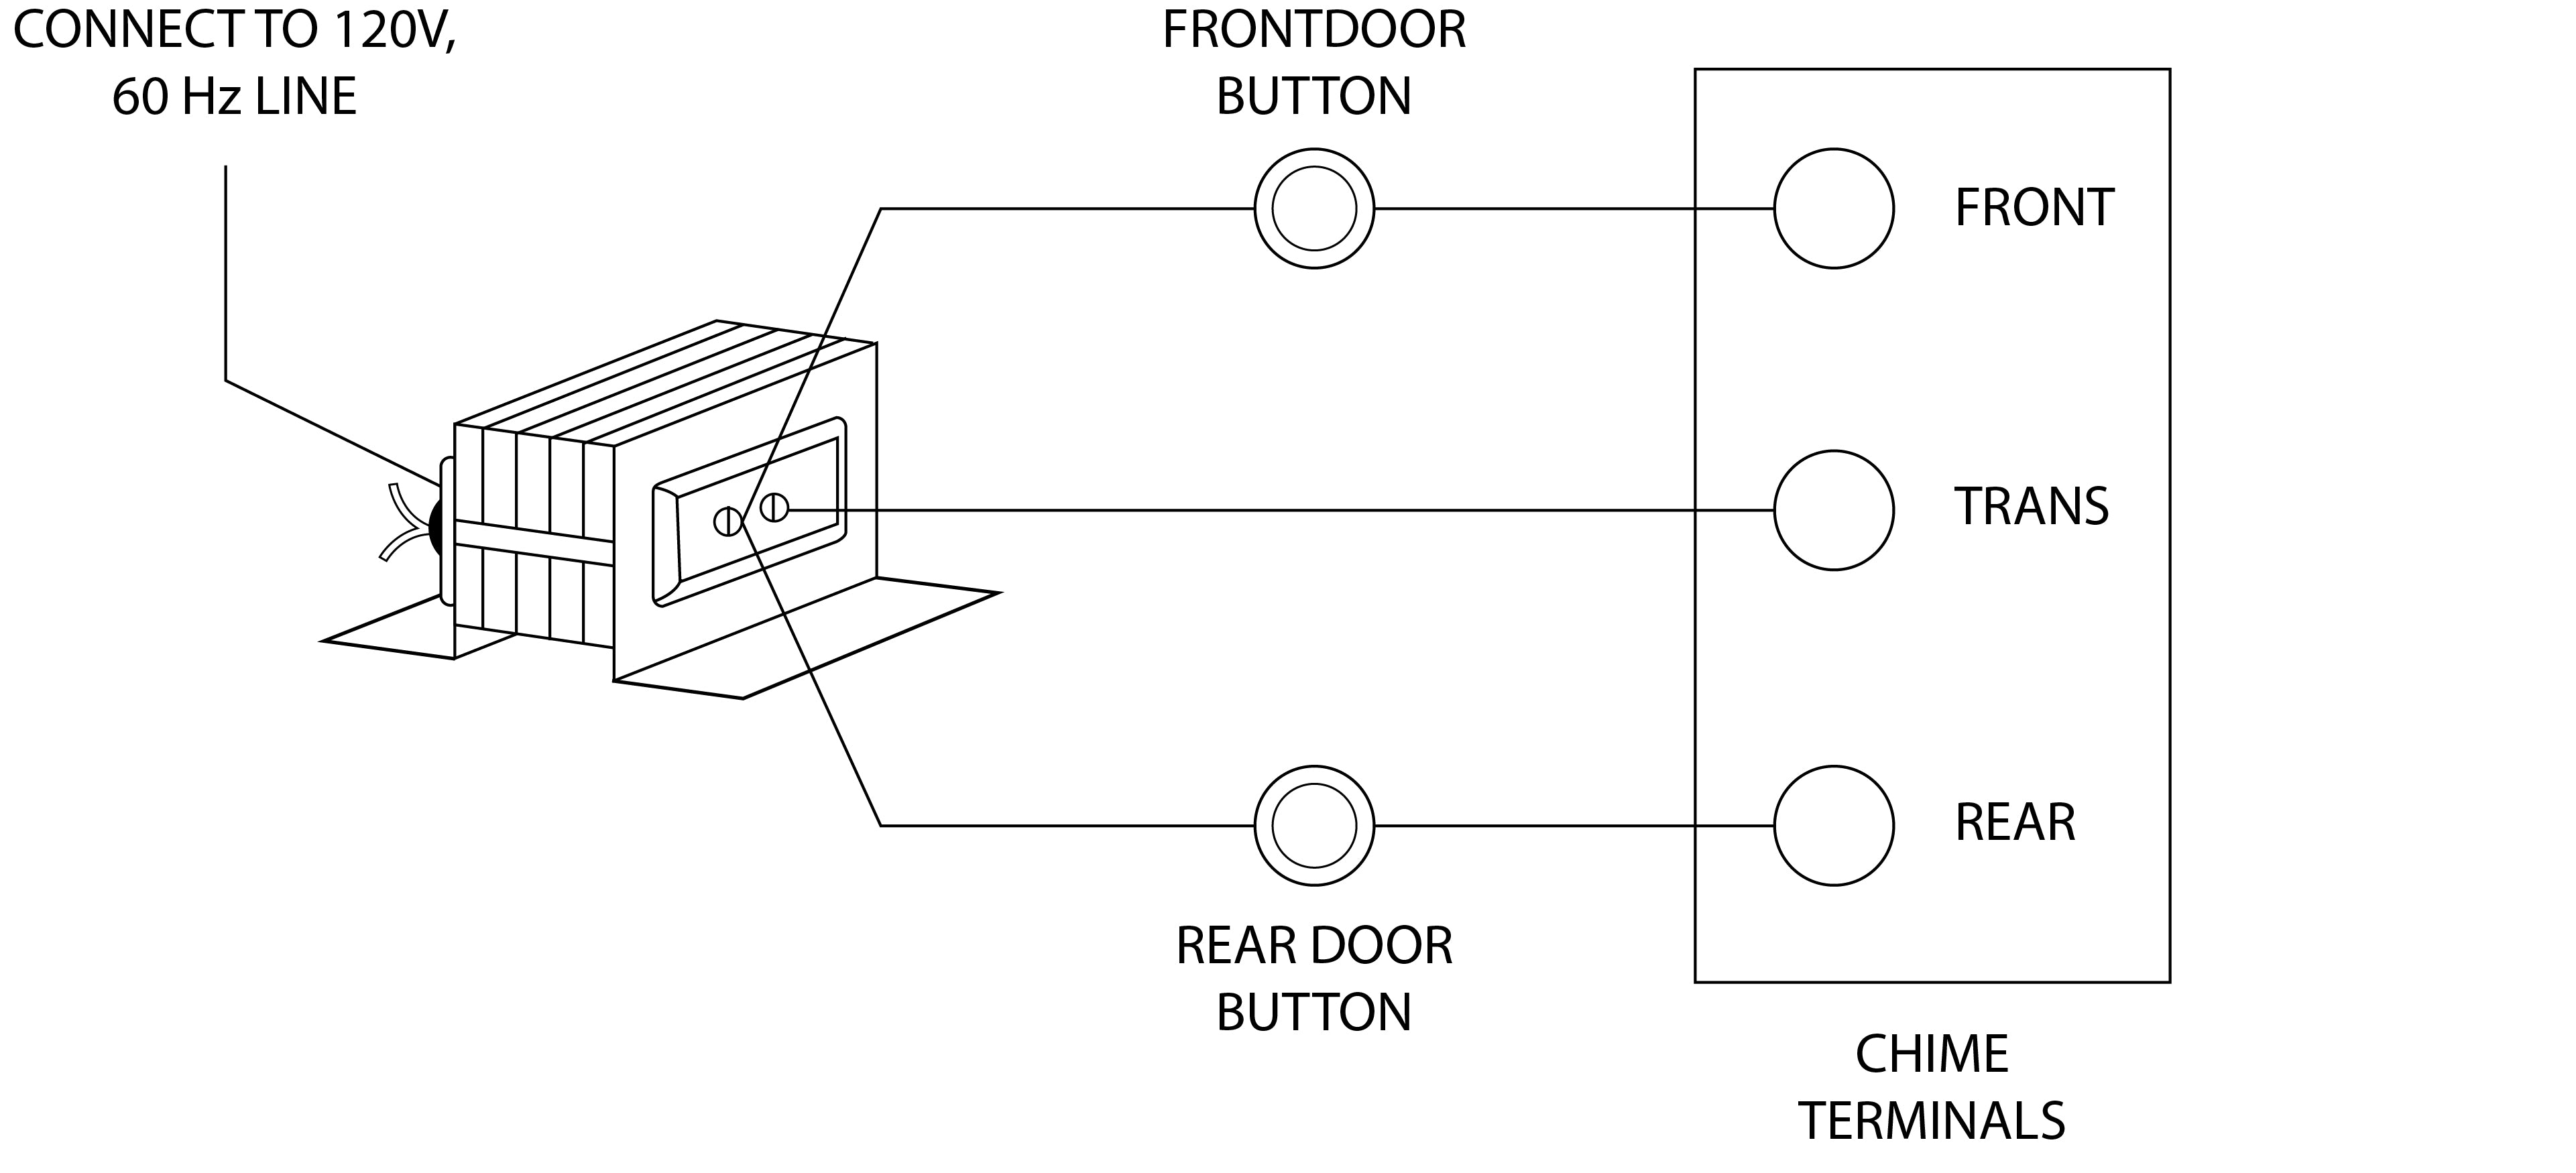 wiring diagram ring doorbell wiring diagram doorbell transformer diagram \u2022 wiring friedland doorbell wiring diagram at alyssarenee.co